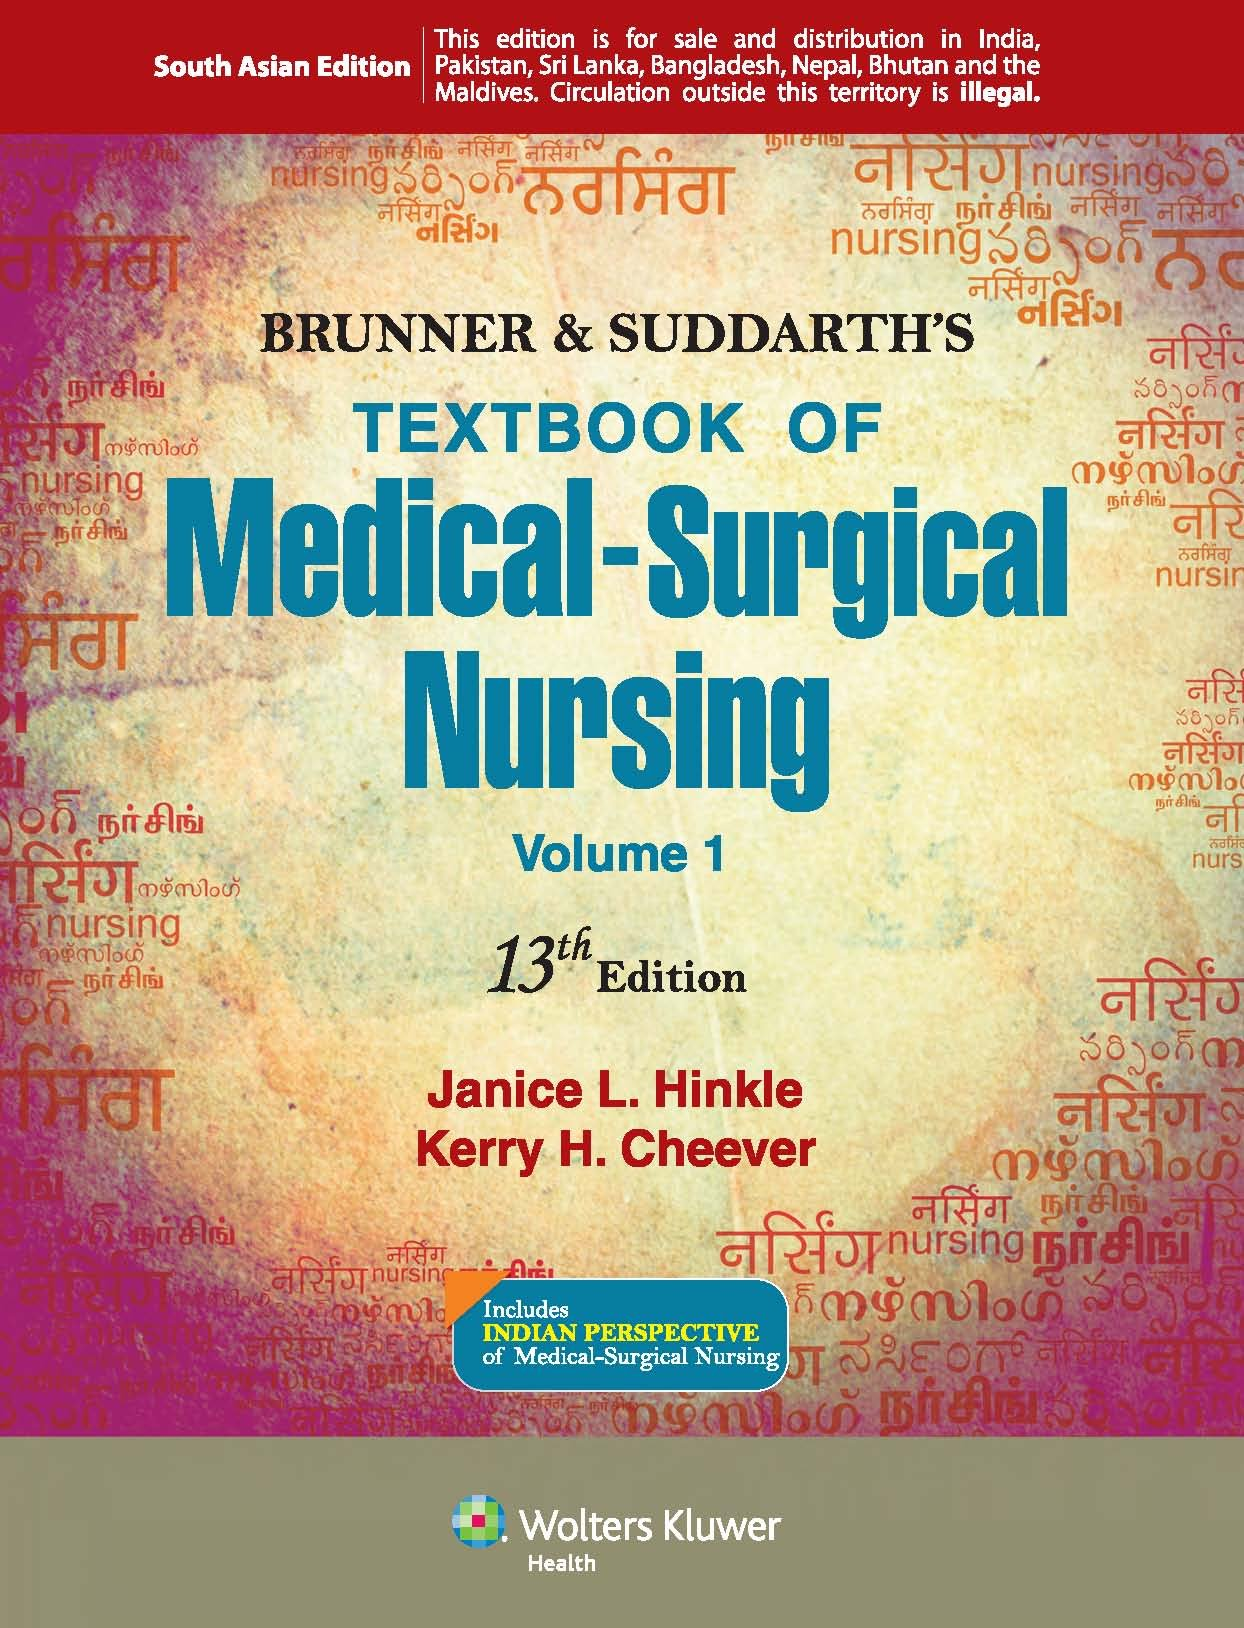 Buy brunner suddarths textbook of medical surgical nursing buy brunner suddarths textbook of medical surgical nursing vol1 2 book online at low prices in india brunner suddarths textbook of medical fandeluxe Image collections